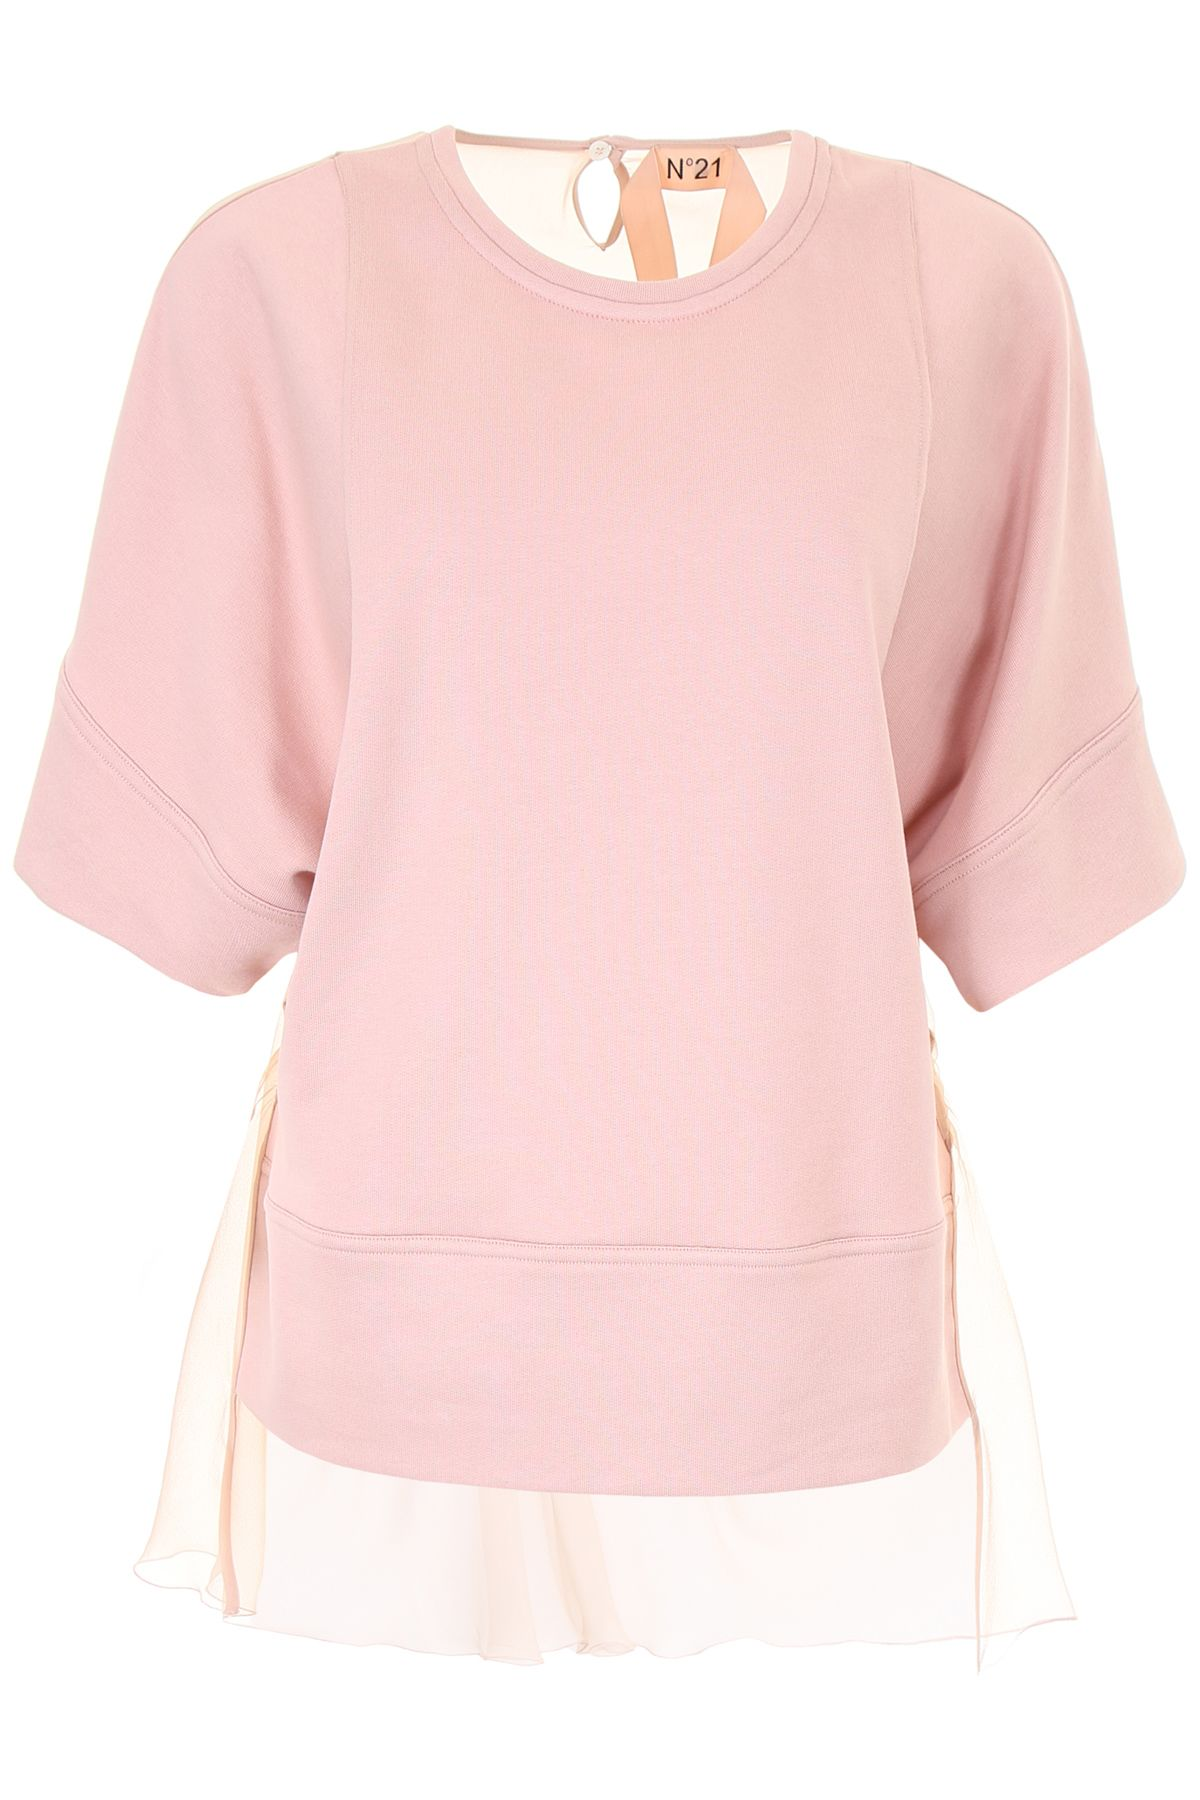 N.21 Sweatshirt With Chiffon And Lace